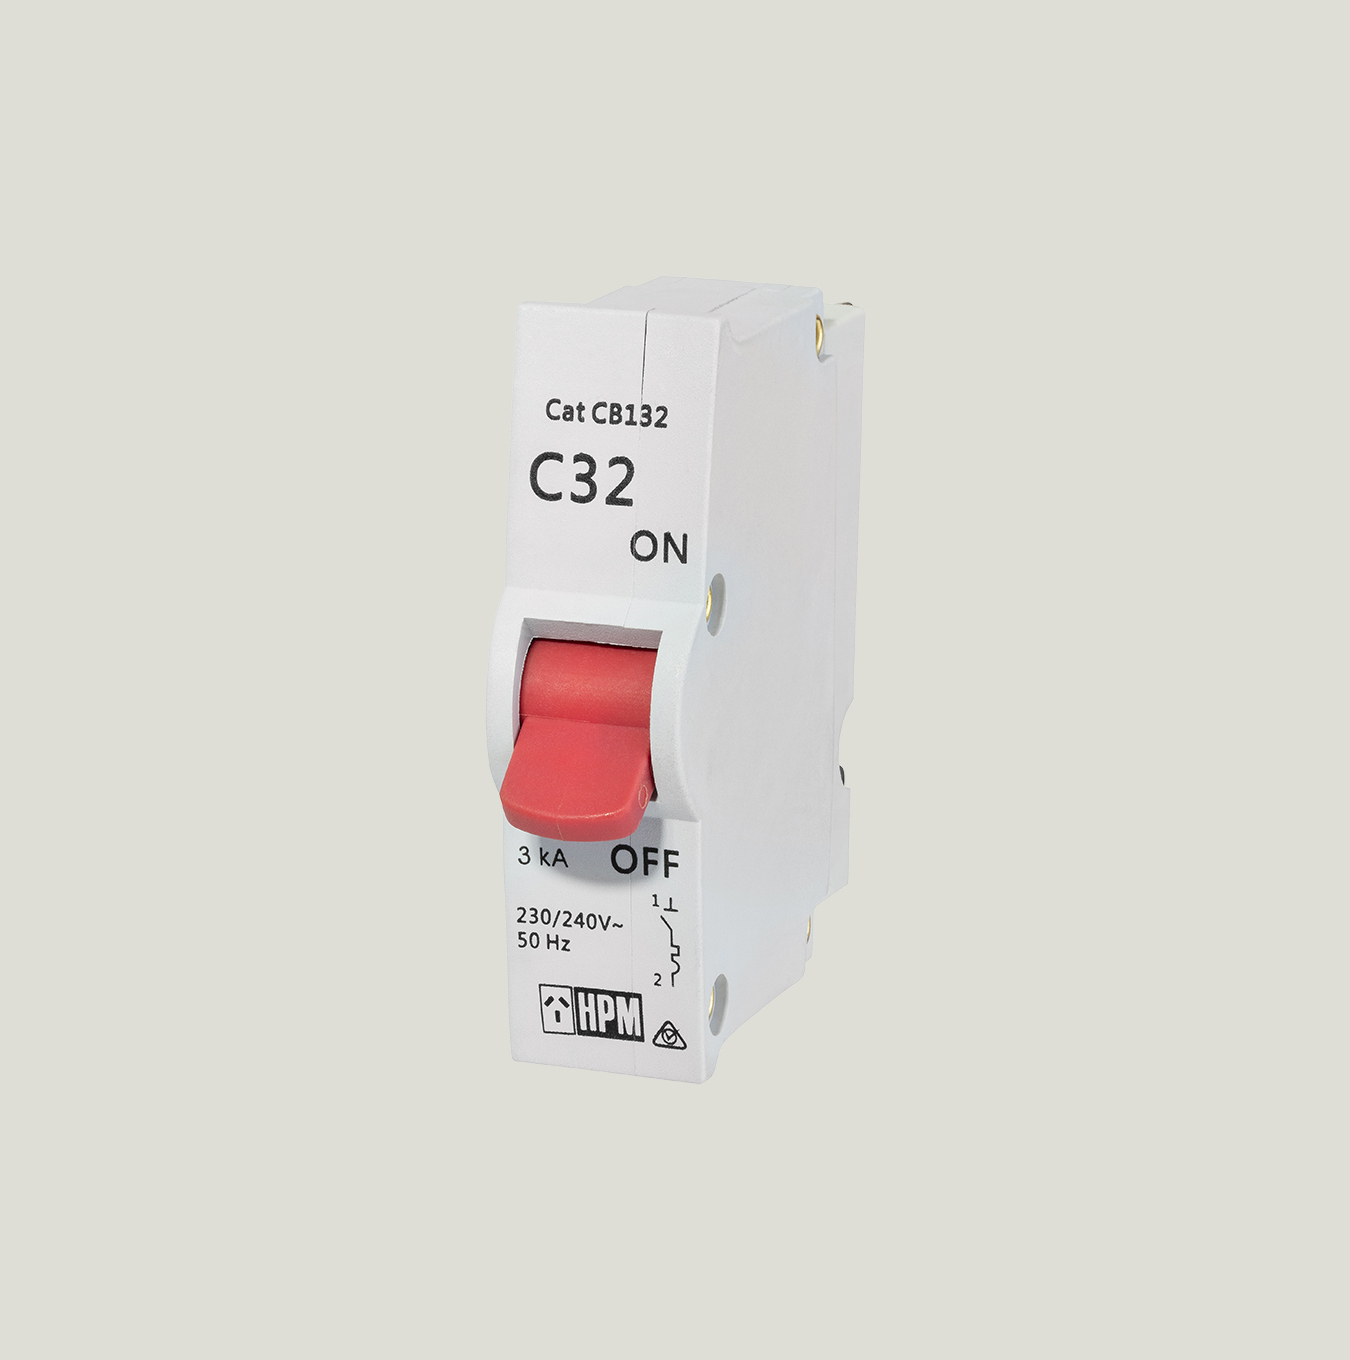 Circuit Breakers Au Site Rcd Wiring Diagram Australia Rcbo Clipsal We Make Products To Keep You Safe